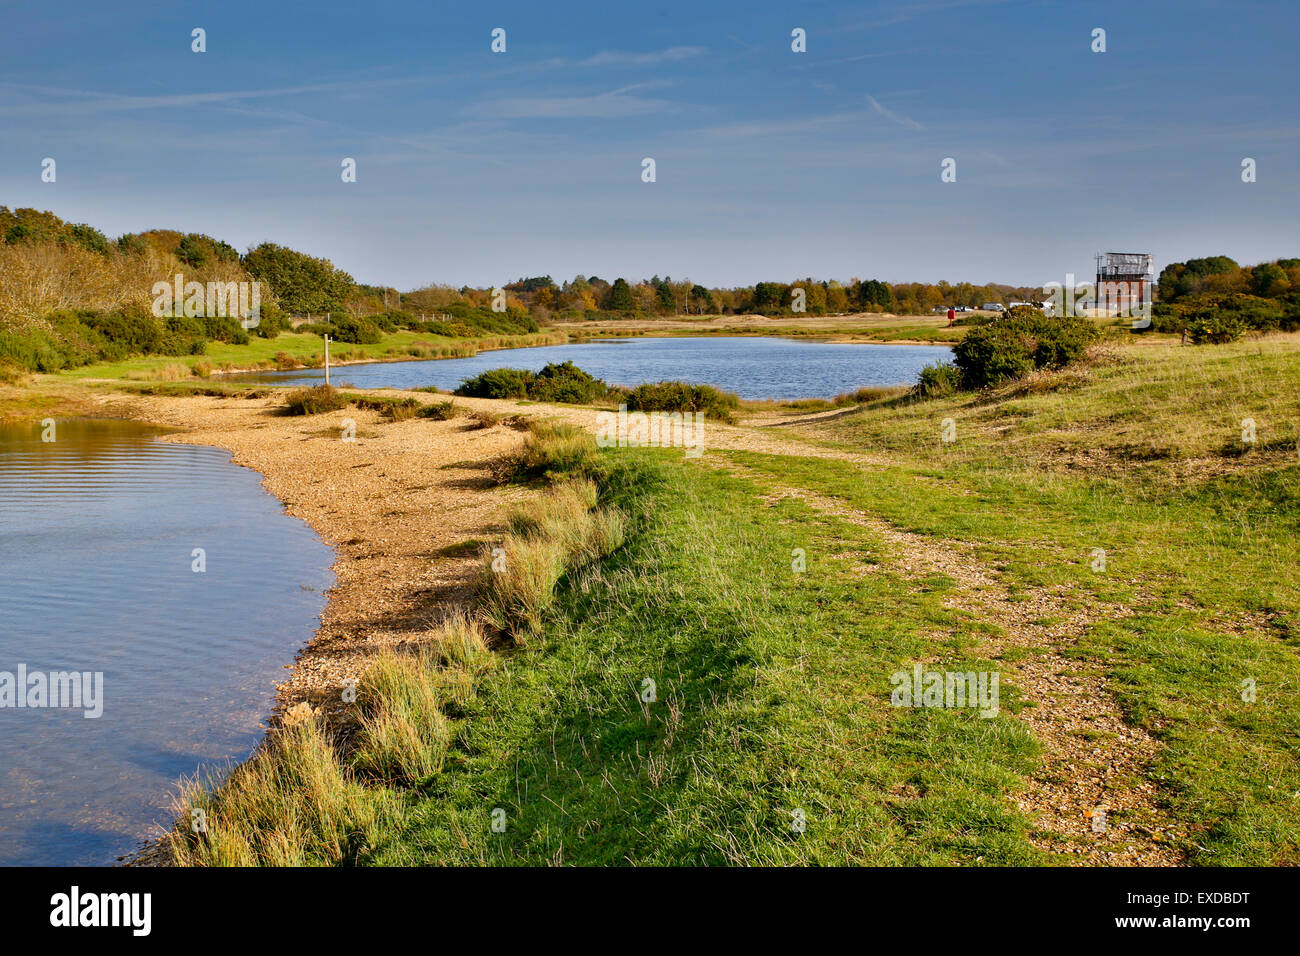 Greenham Common; piscinas, Berkshire, Reino Unido Imagen De Stock